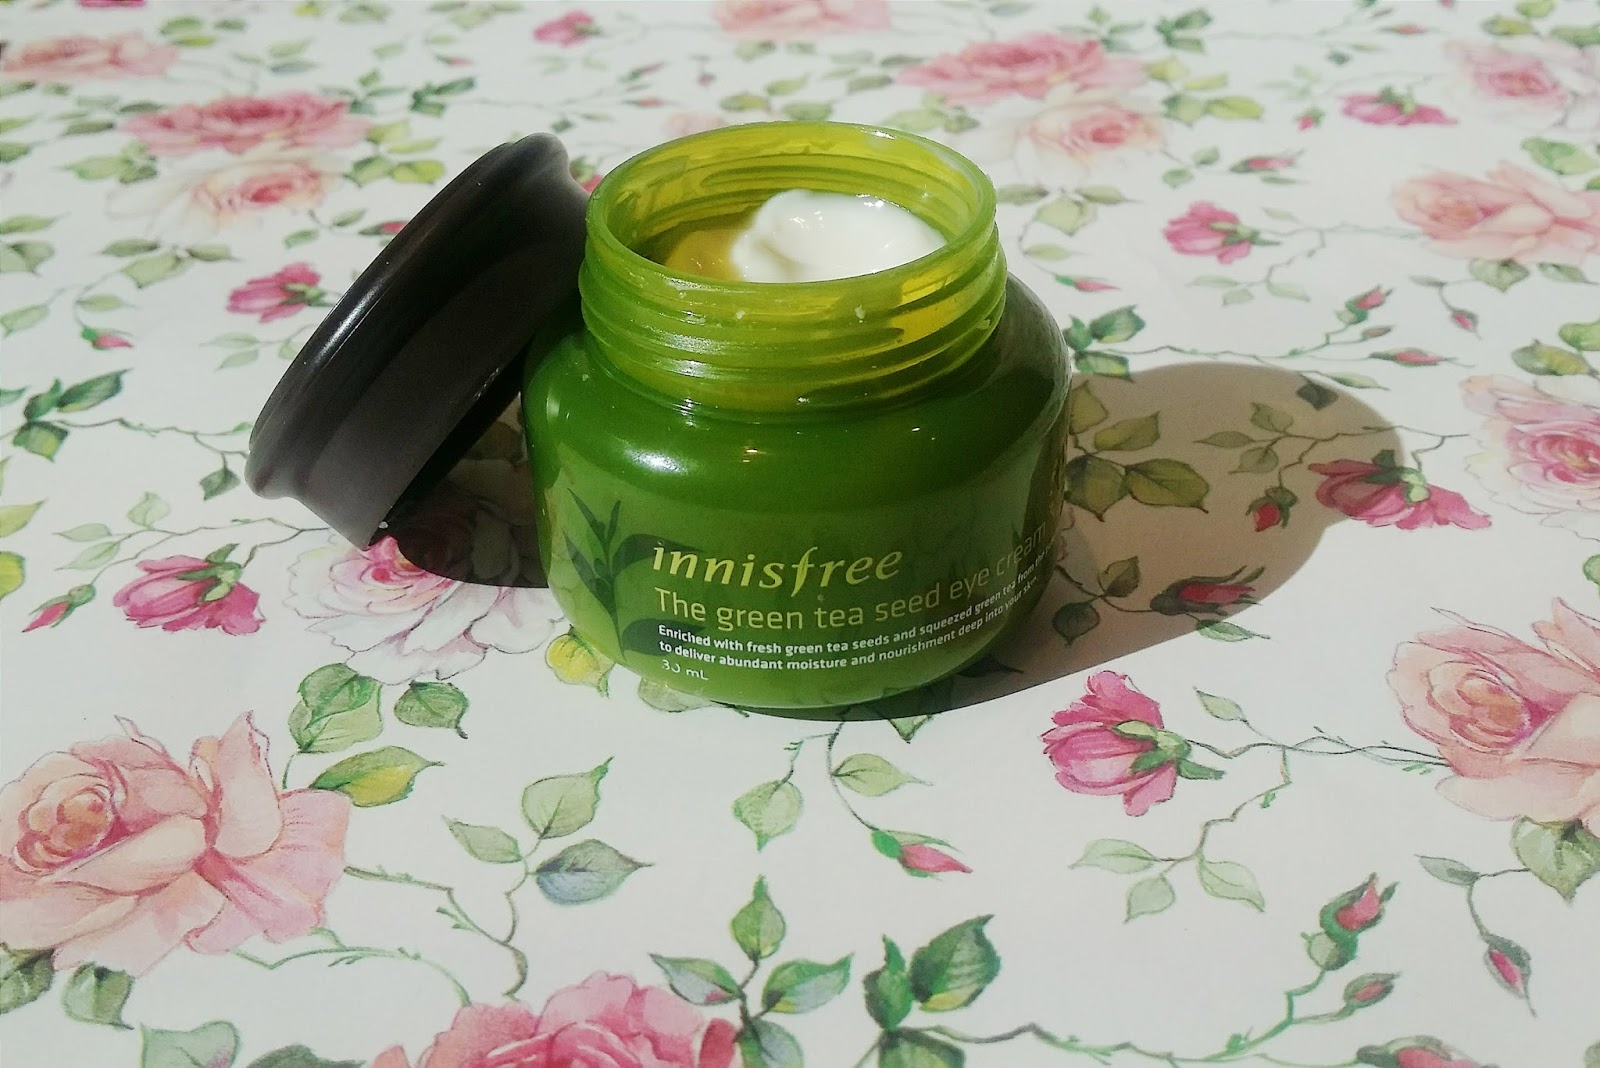 Review Innisfree The Green Tea Seed Eye Cream Chocowip There Are 30ml Of Products Which Is Pretty Good For An Since Area You Need To Moisturize Really Small And Its Always Better Not Put